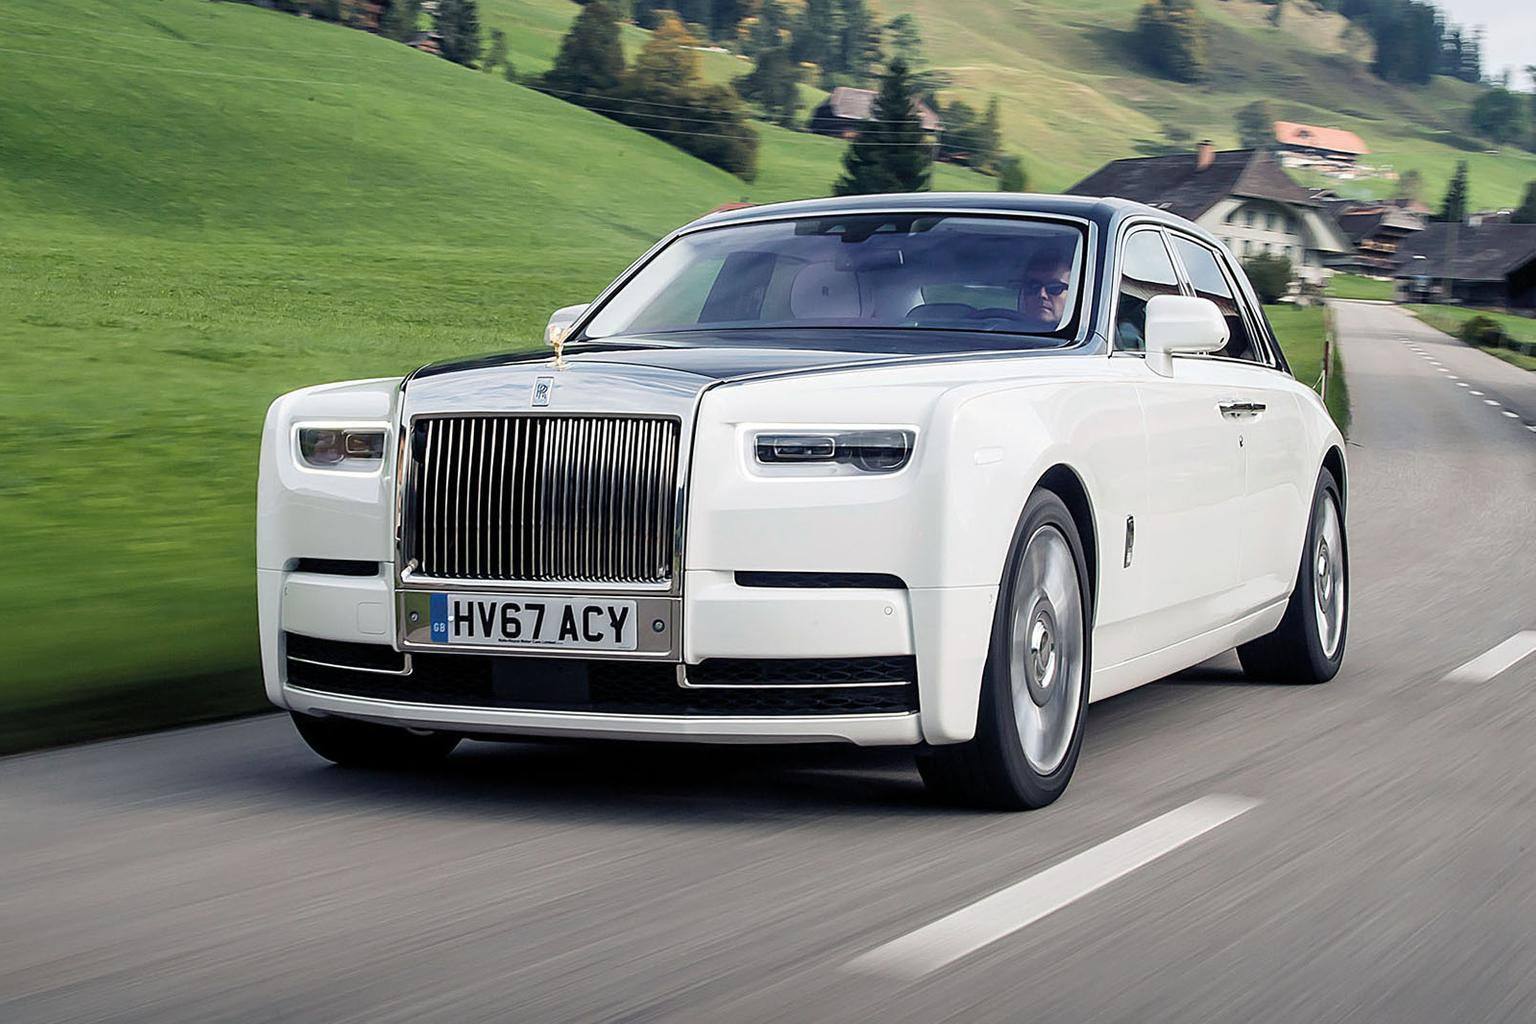 2017 Rolls Royce Phantom Review Price Specs And Release Date